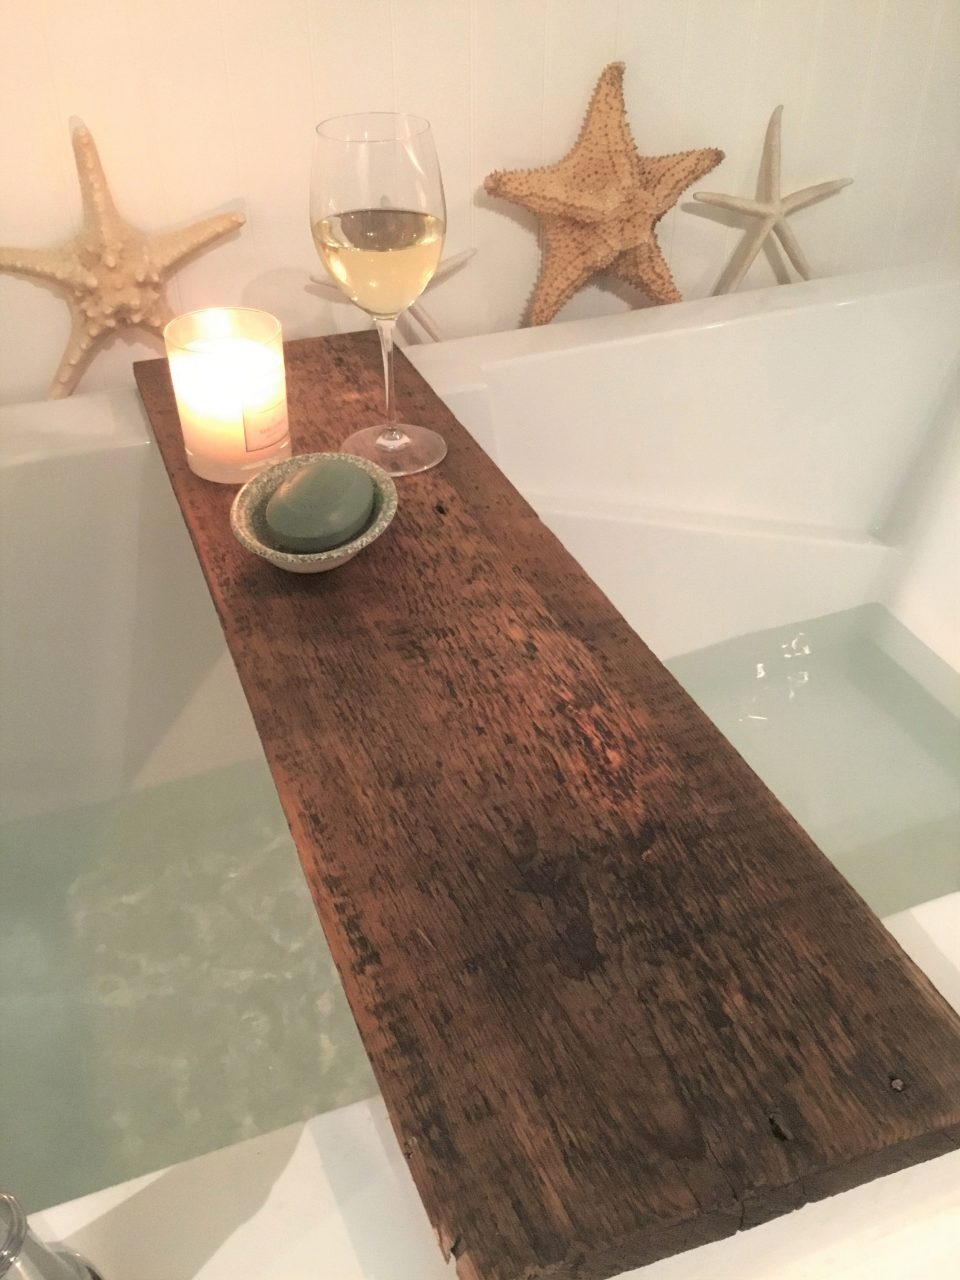 Bathtub Tray Bathroom Decor And Accessories Custom Made To Etsy